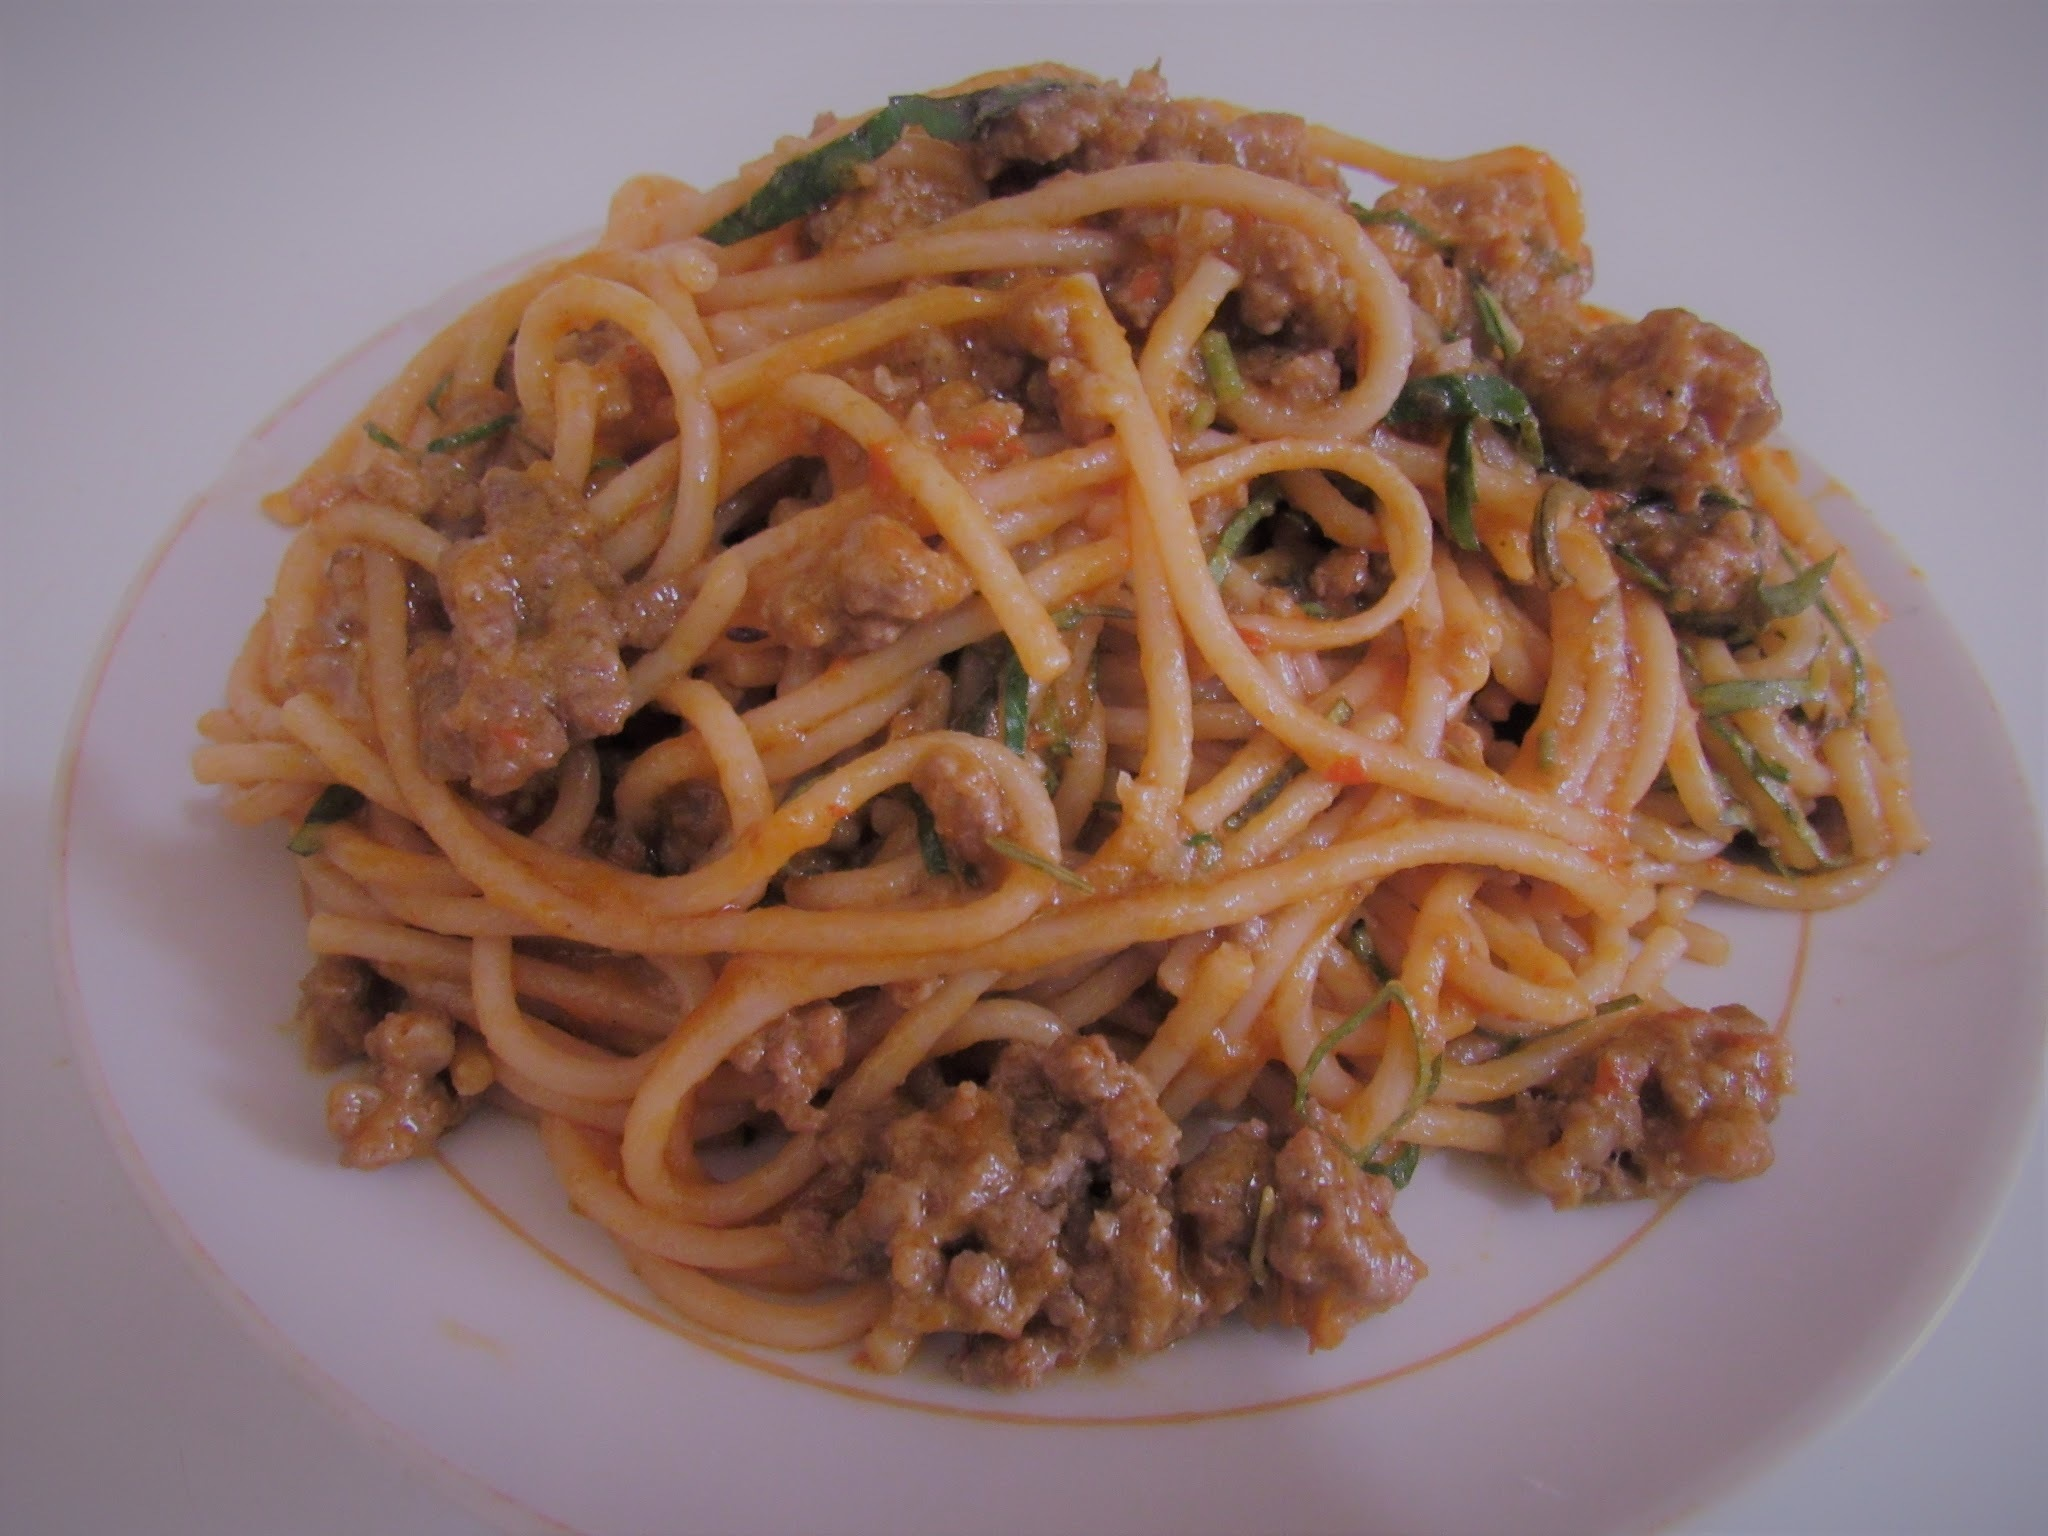 How to cook spaghetti with minced meat and vegetables